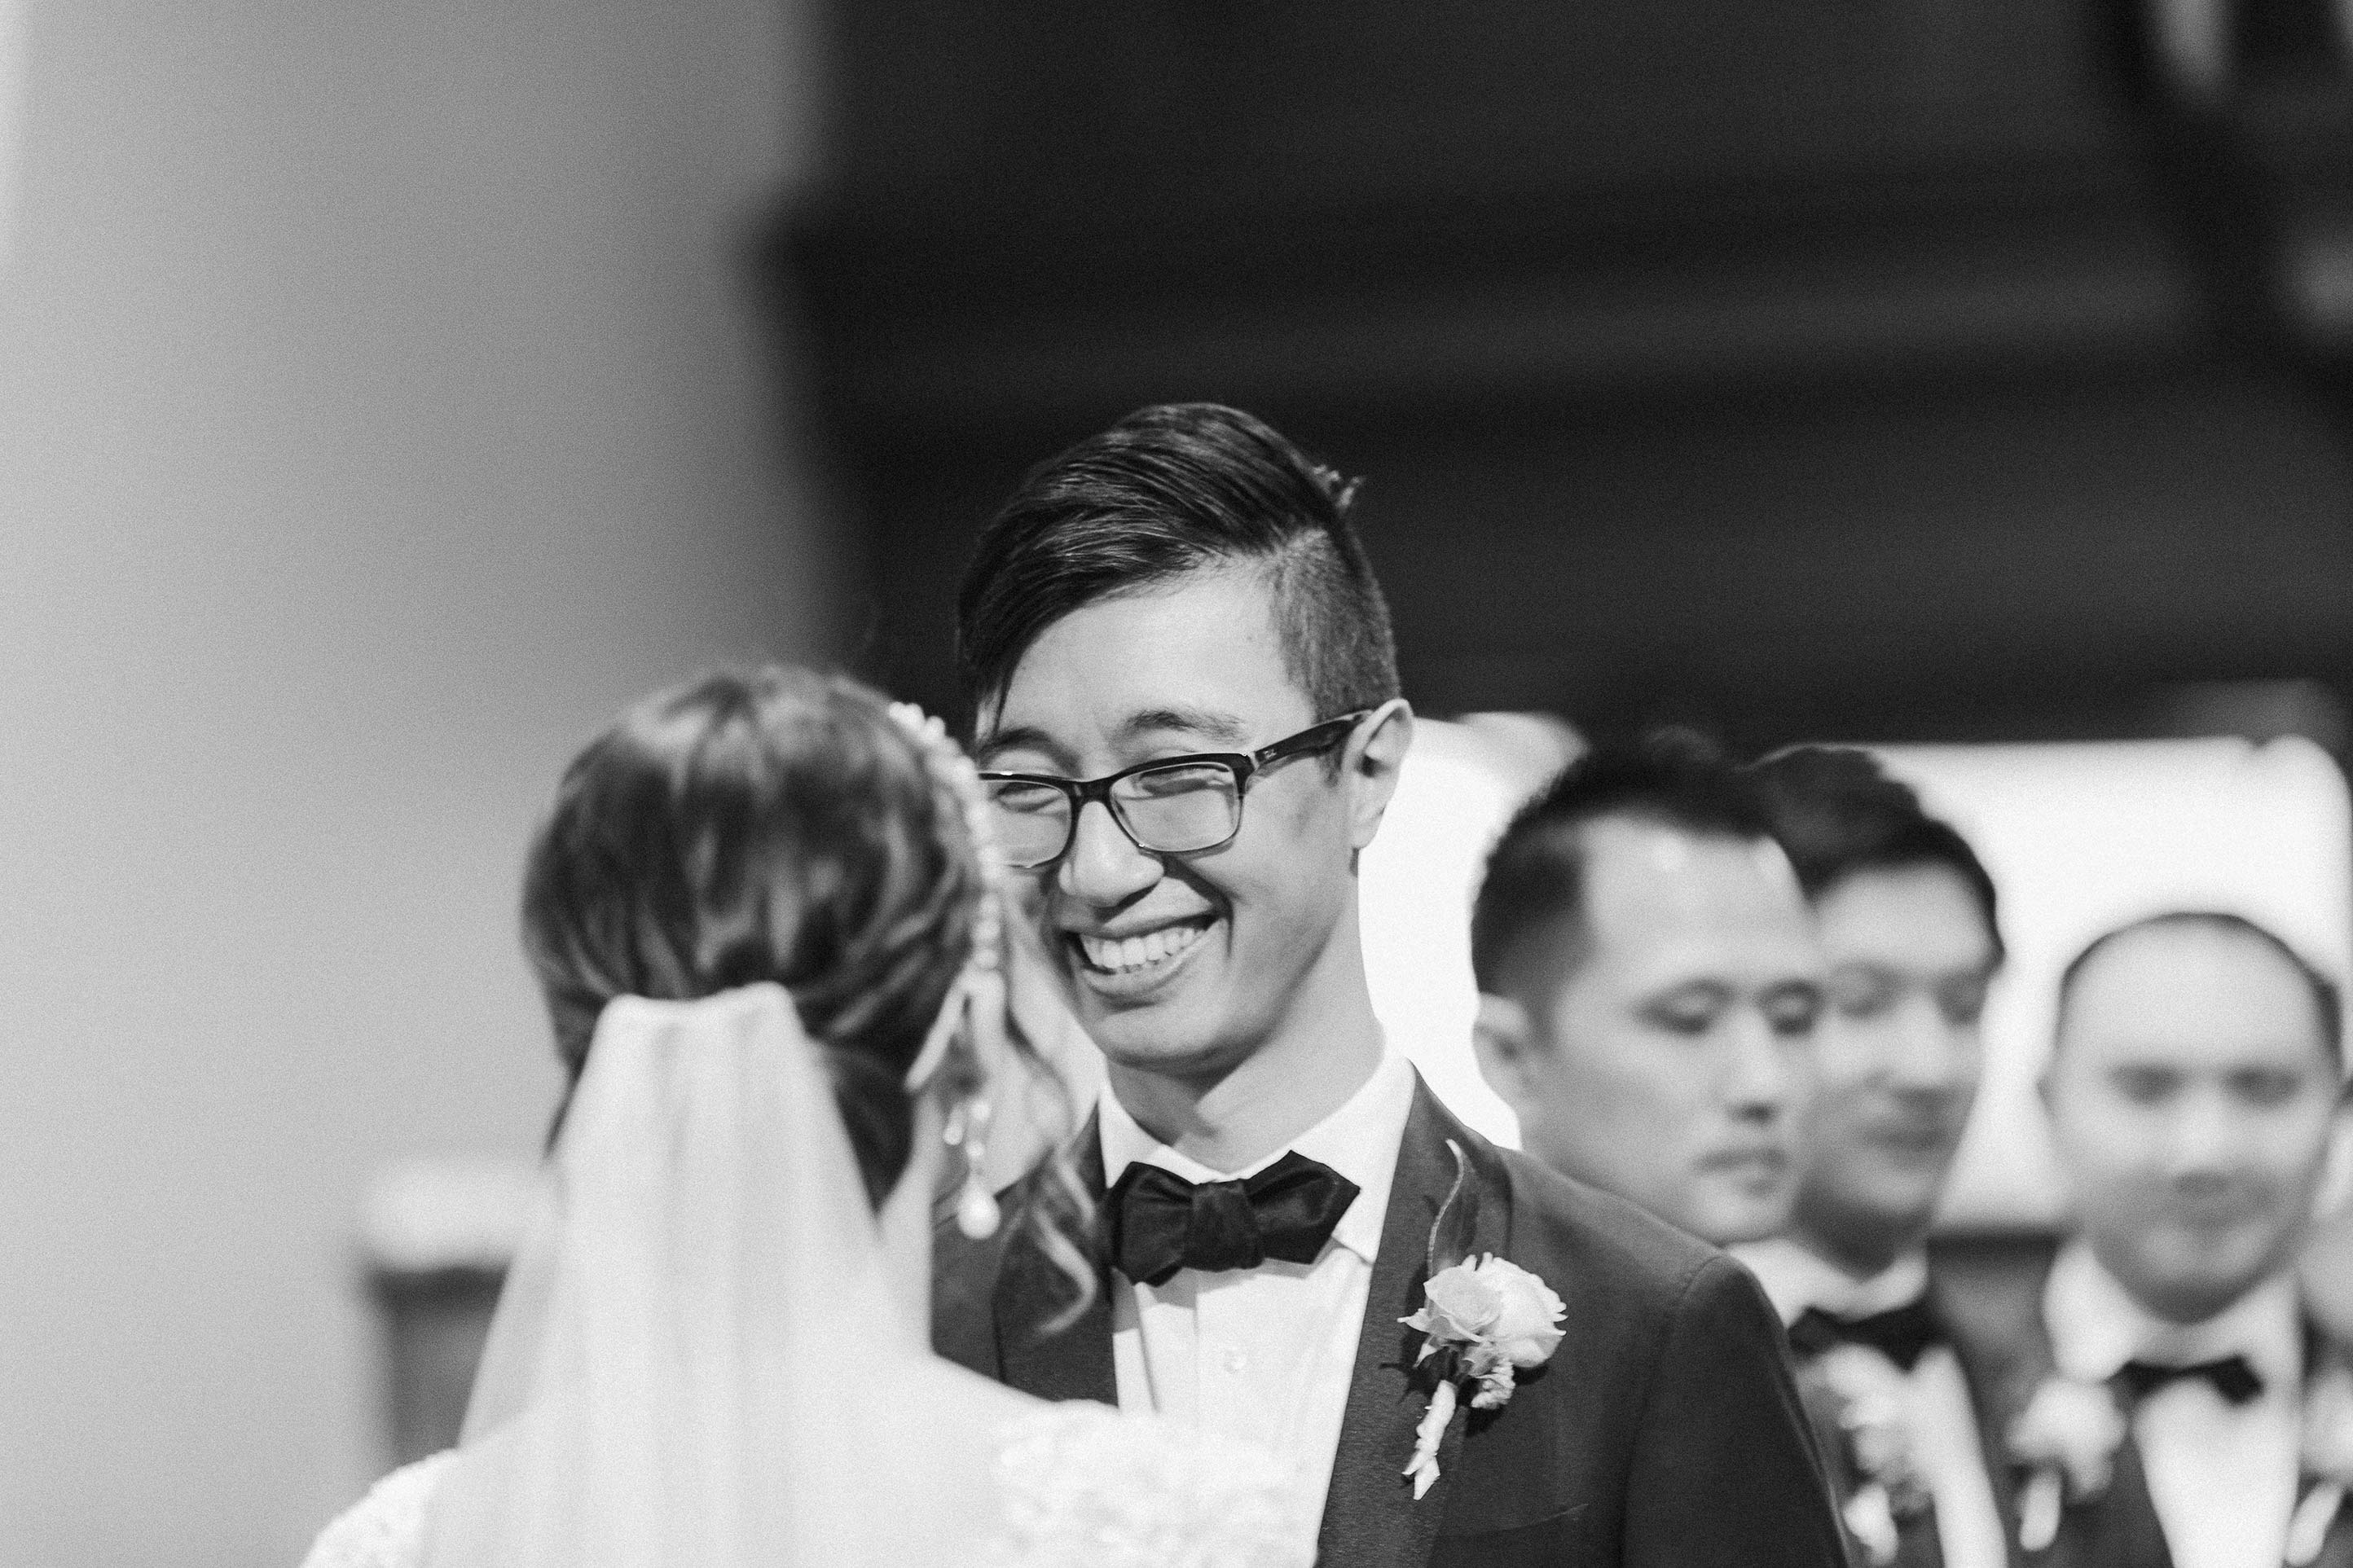 Melbourne-caufield-north-wedding-church-ceremony-groom-smile